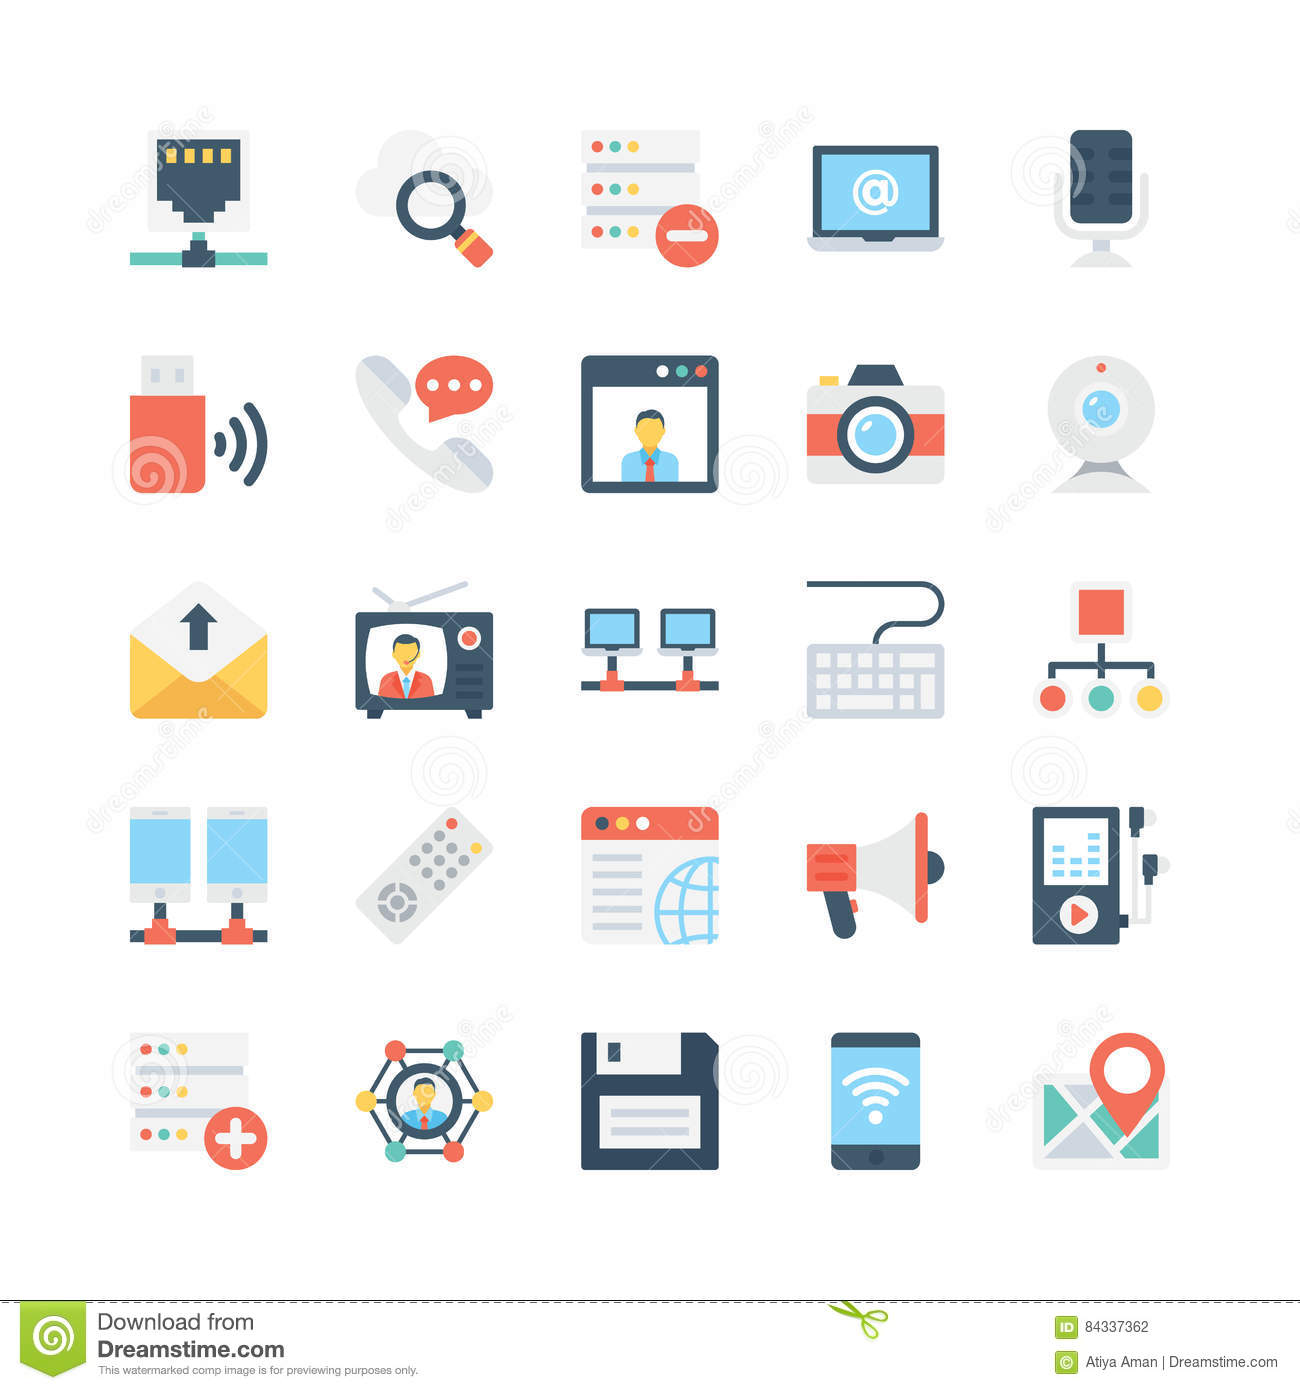 Network and Communications Vector Icons 3